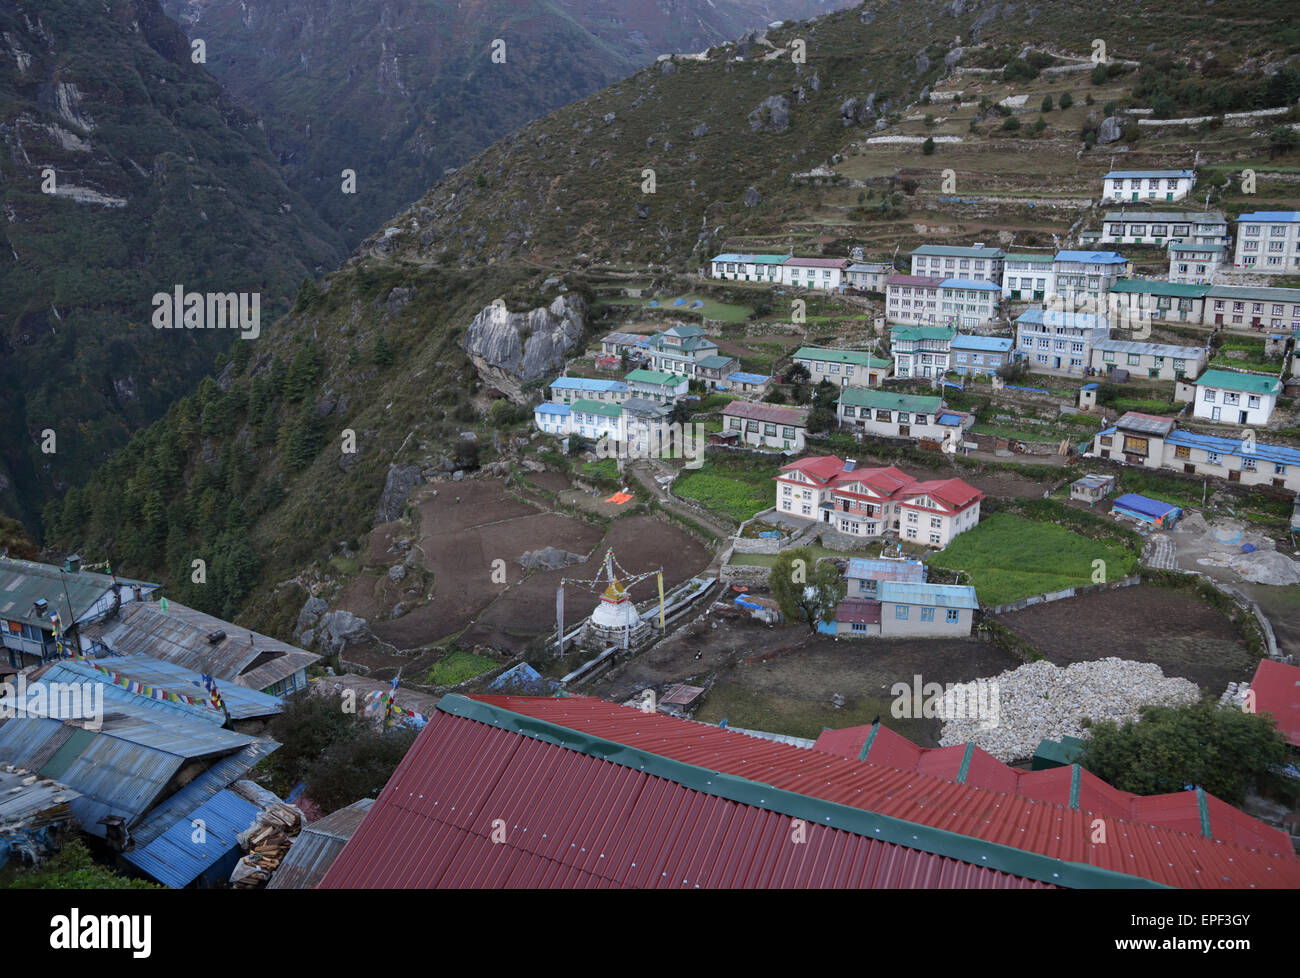 The view from the Hill Ten Hotel, looking down onto the town of Namche Bazaar in the Everest Region of Nepal - Stock Image